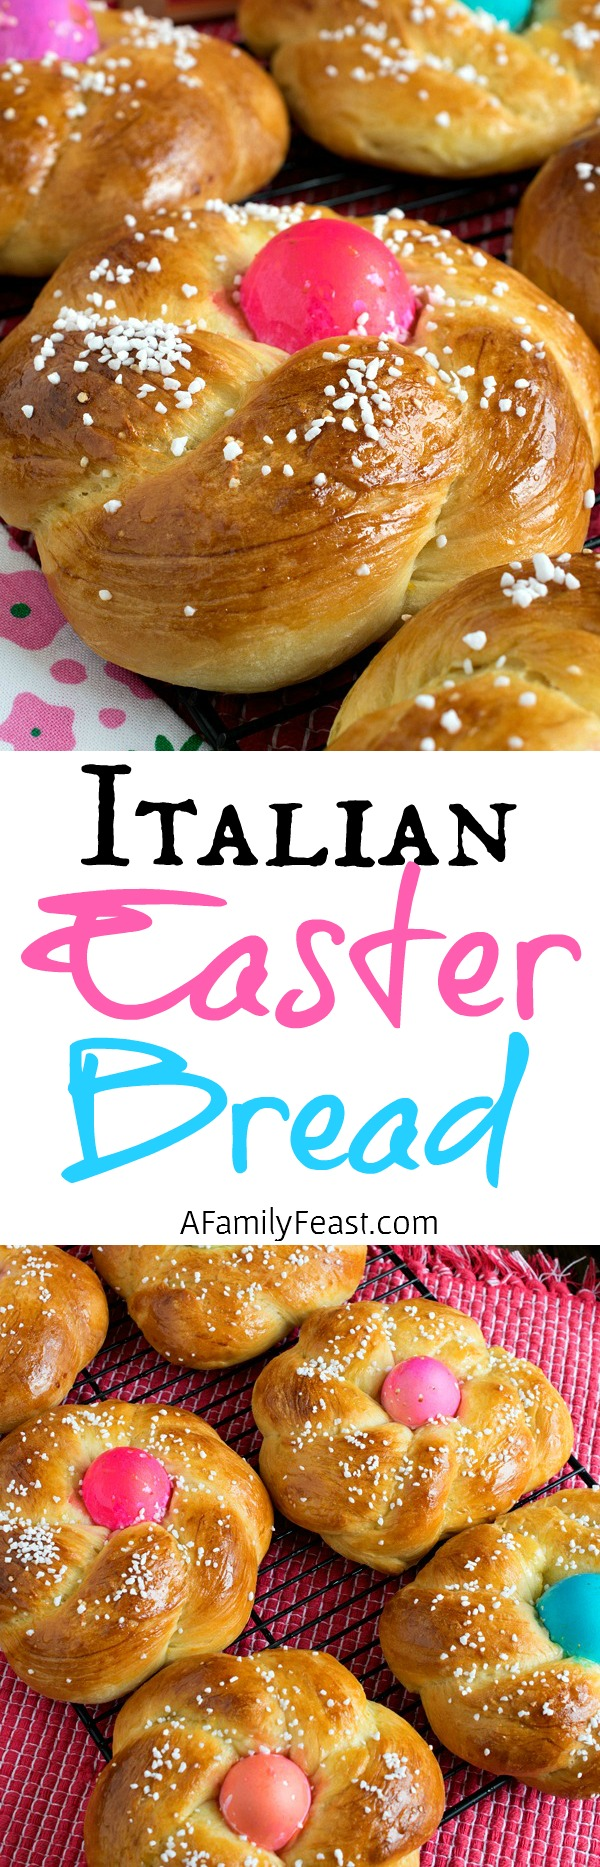 Italian Easter Bread (also known as Pane di Pasqua) is a traditional bread made for the Easter holiday. Delicious!